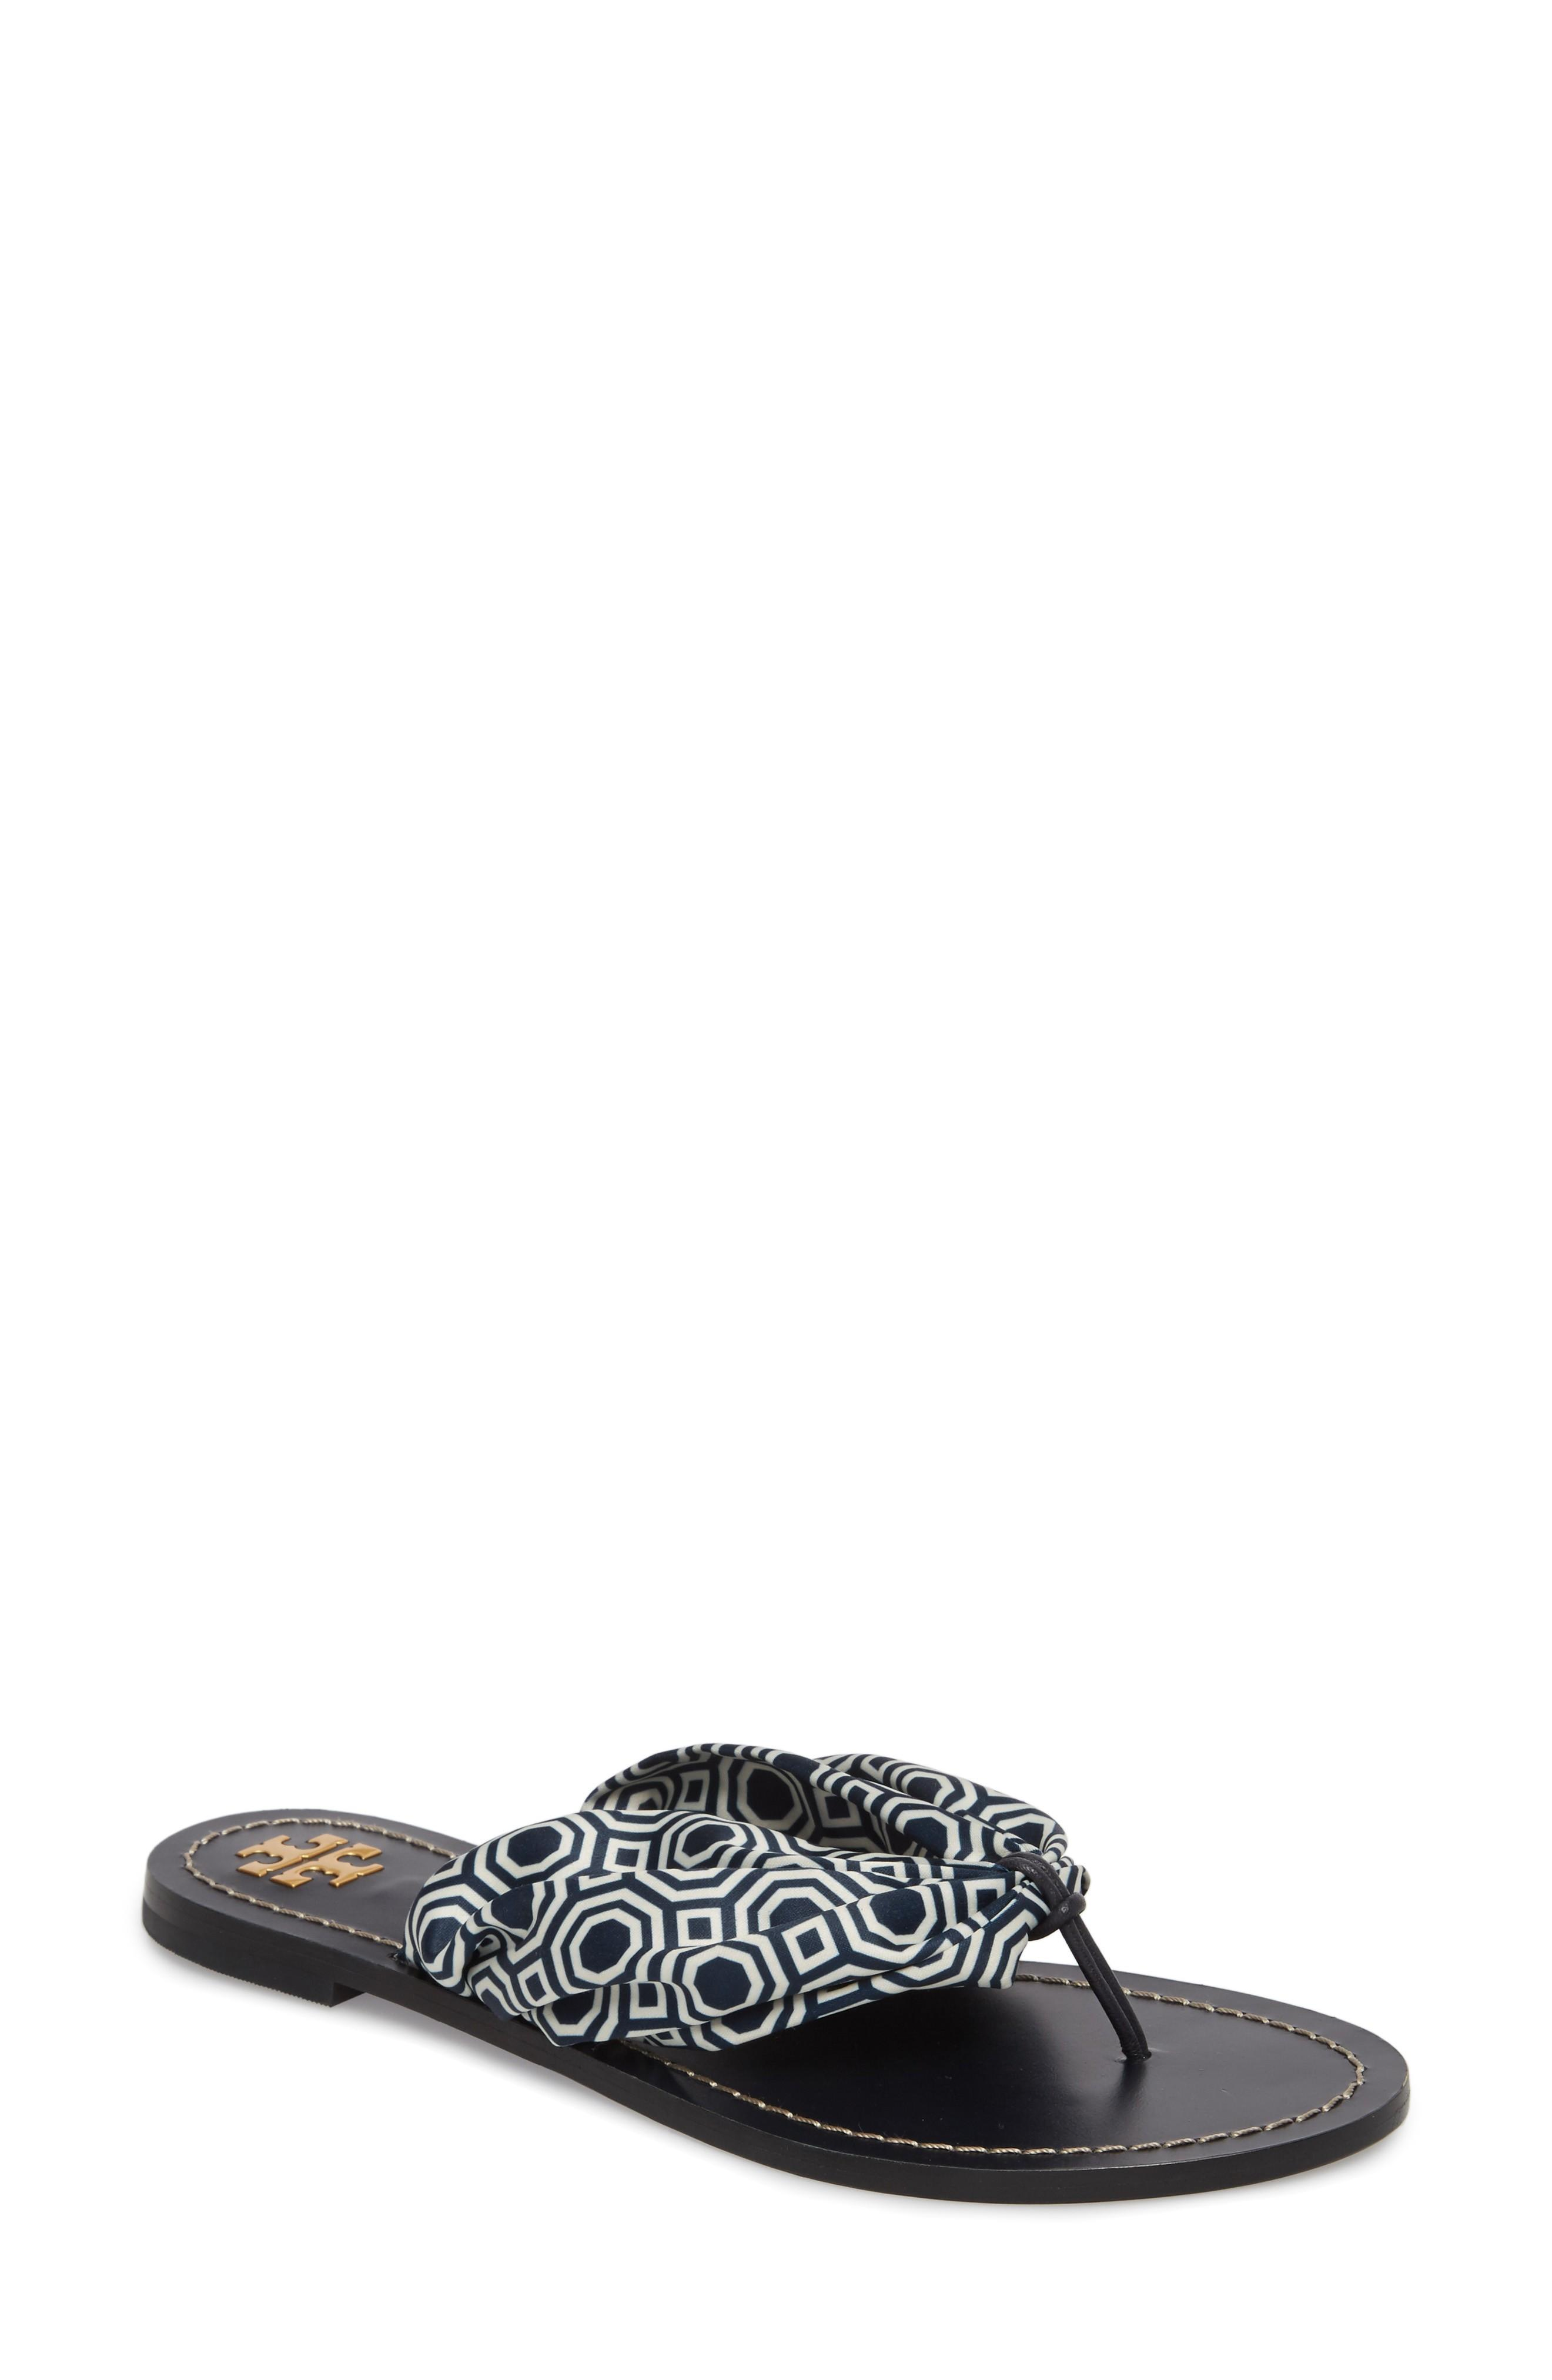 7f63b28535c3 Style Name  Tory Burch Carson Flip Flop (Women). Style Number  5553708 2.  Available in stores.